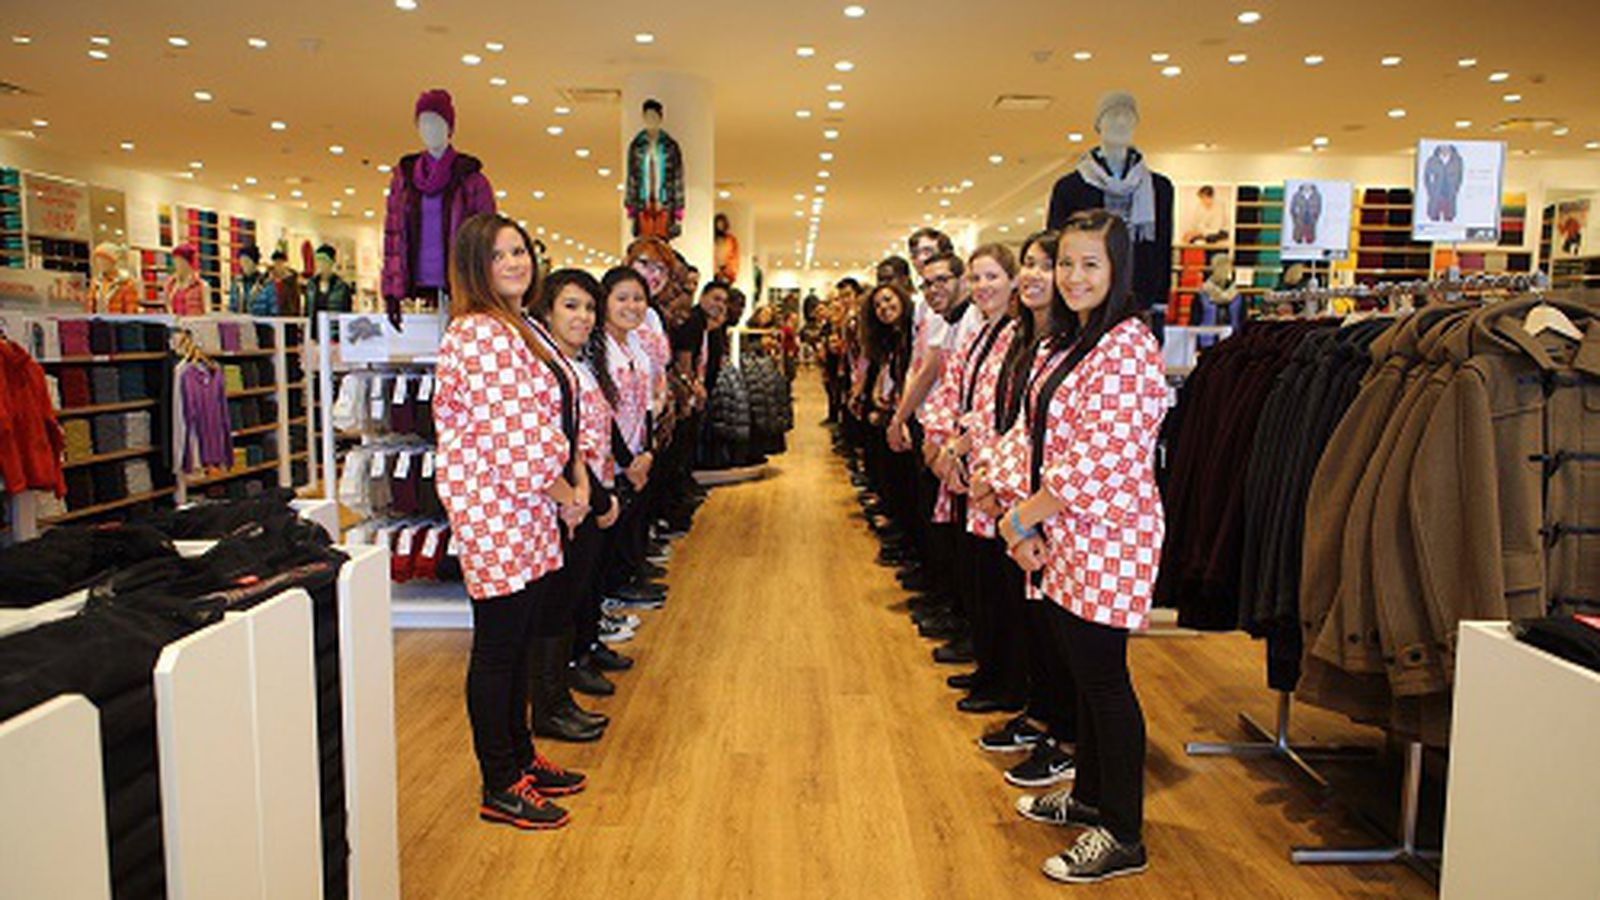 Uniqlo organizational culture